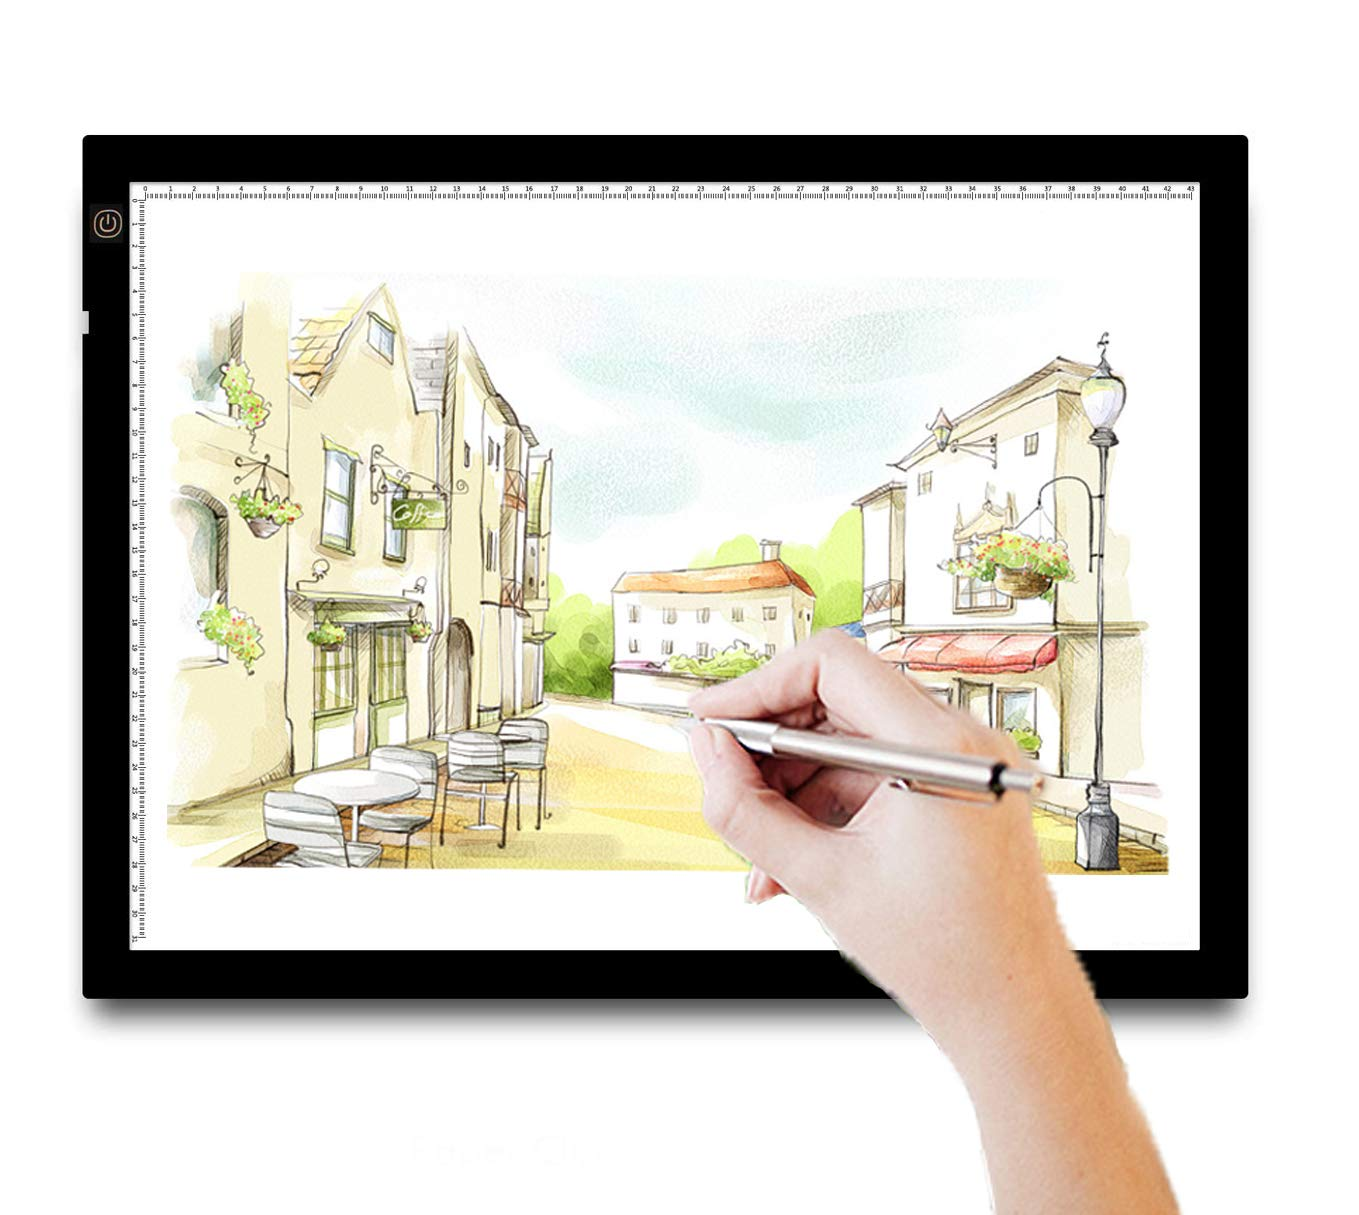 A3 Light Box Tracing Light Box Pad Ultra-Thin Led Light Table Drawing Light Tracer Board with Dimmable Brightness for 5D Diamond Painting, Stencilling, Sketching, X-ray Viewing- USB Powered by STGGO